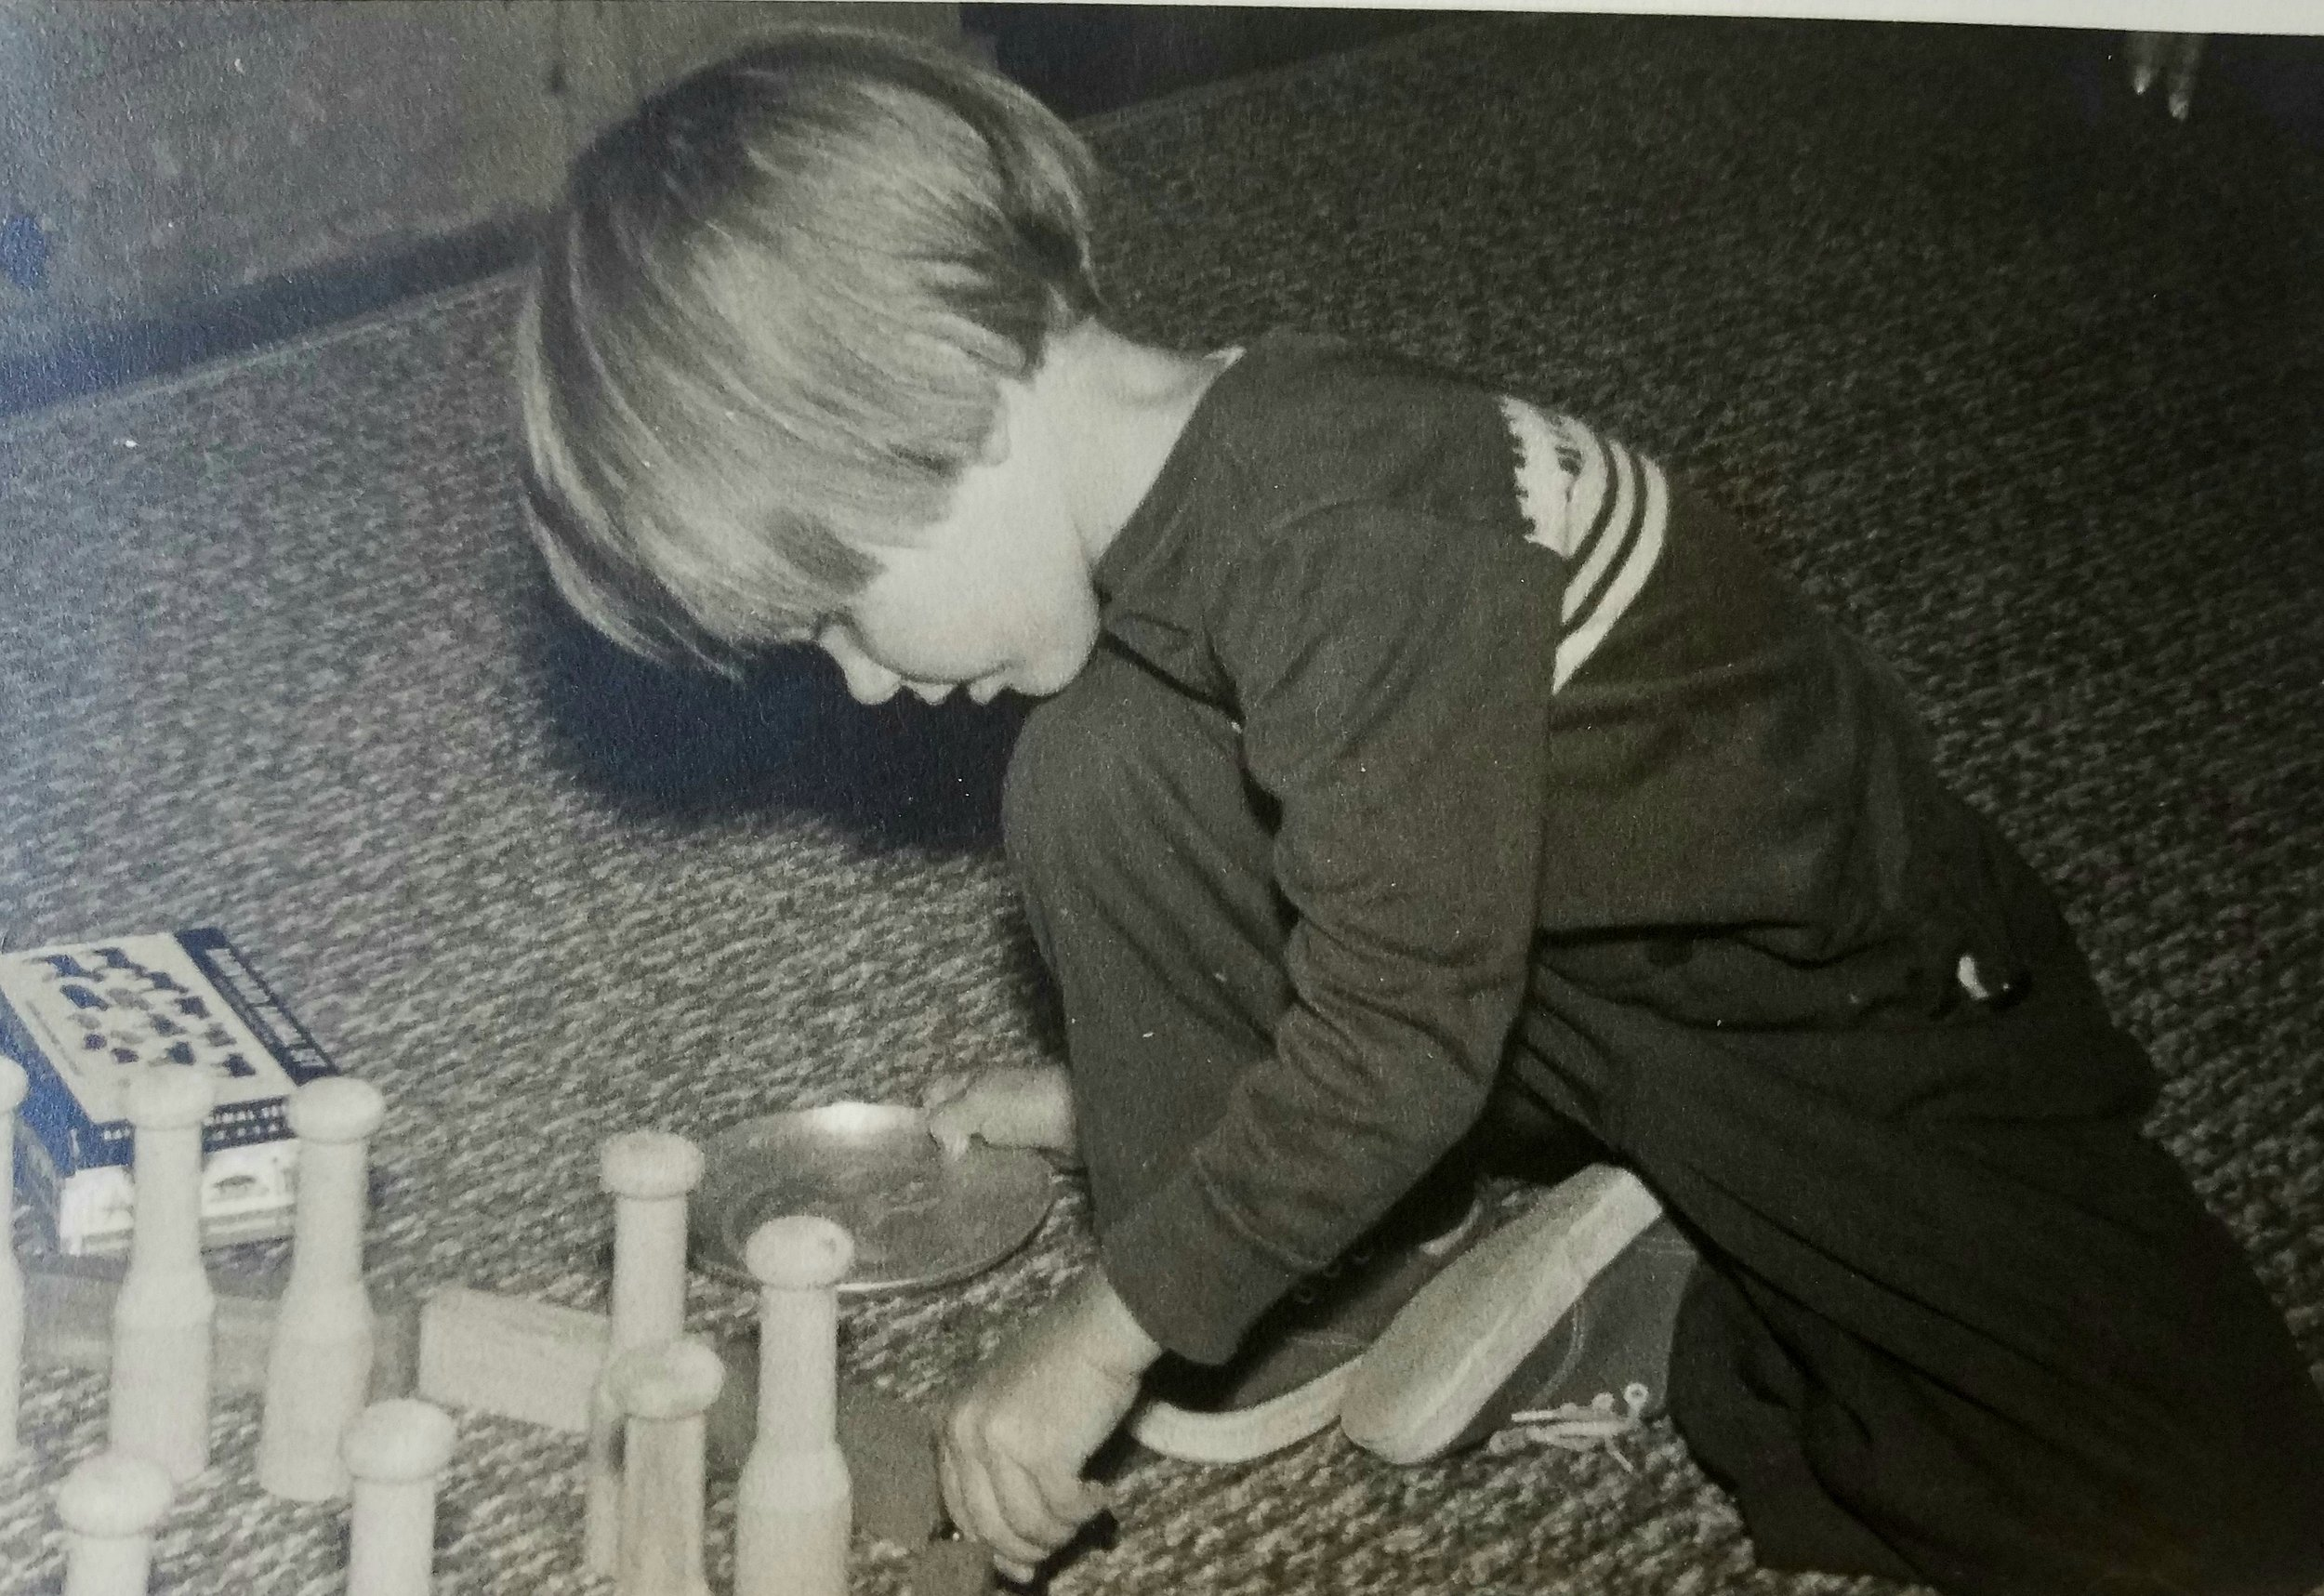 beginning with grandfather's building blocks, Cotuit, MA, 1954